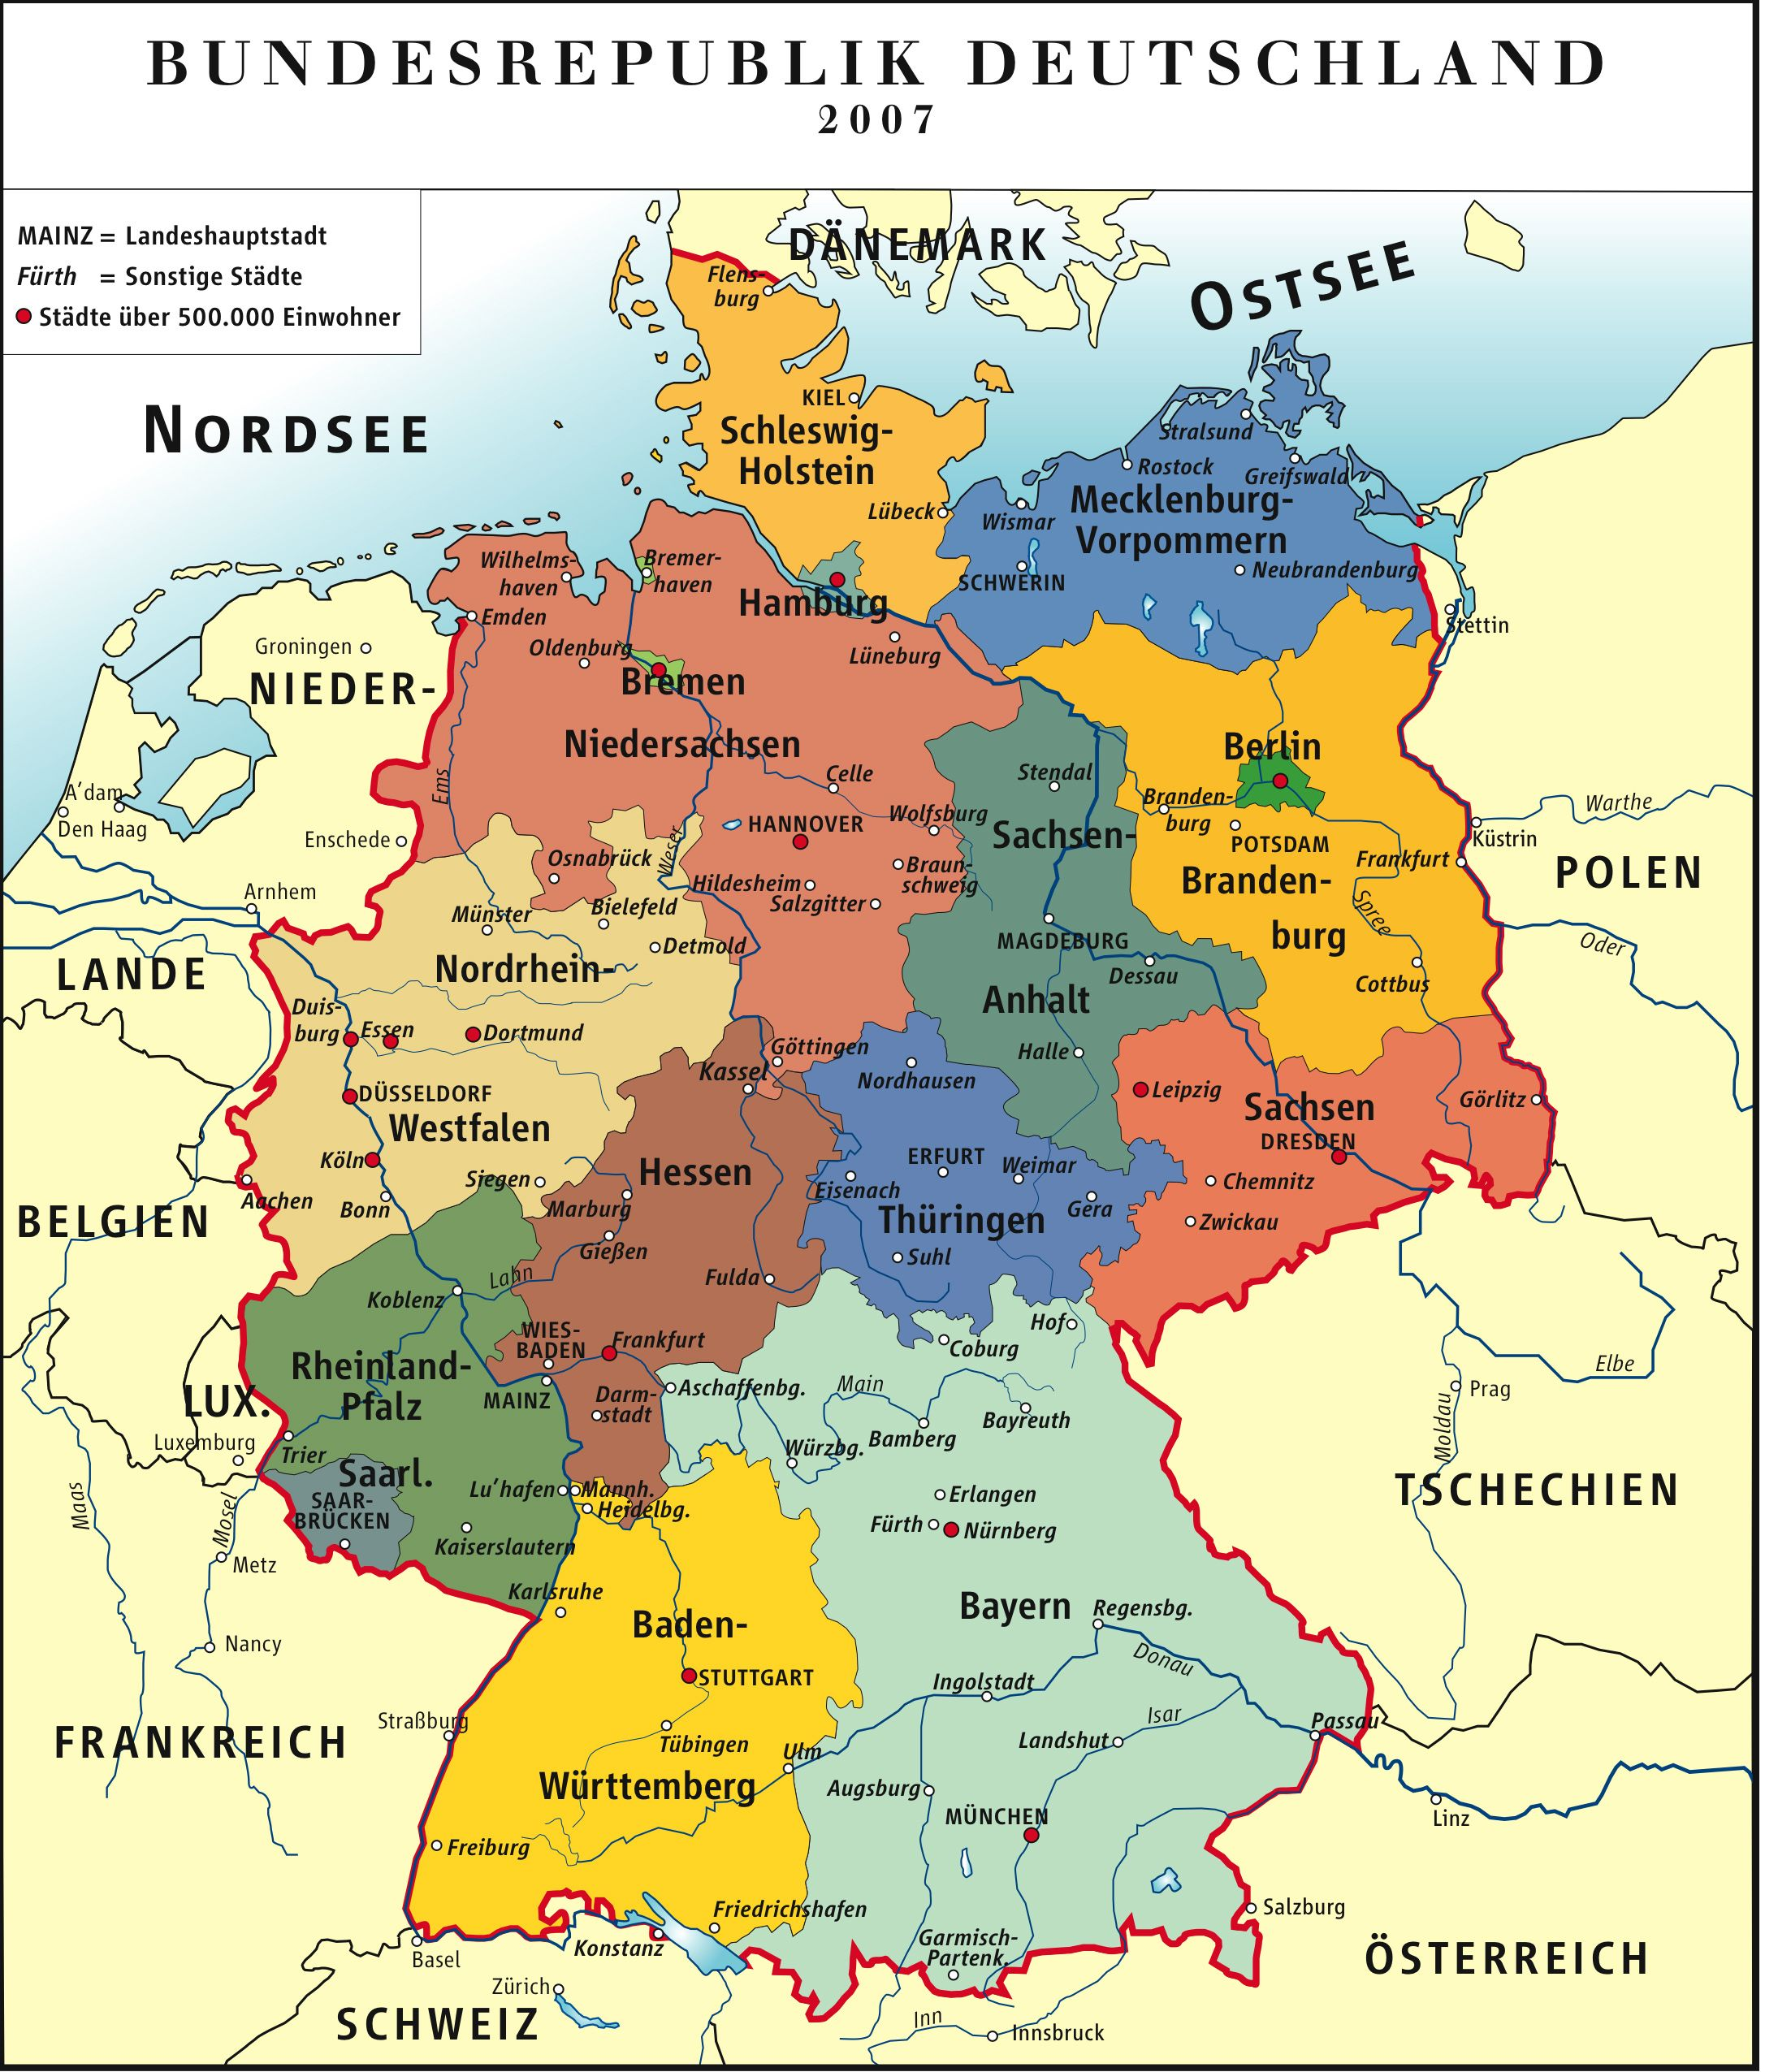 Detailed Map Of Germany With Cities And Towns.Maps Of Germany Detailed Map In English Tourist And Cities Towns